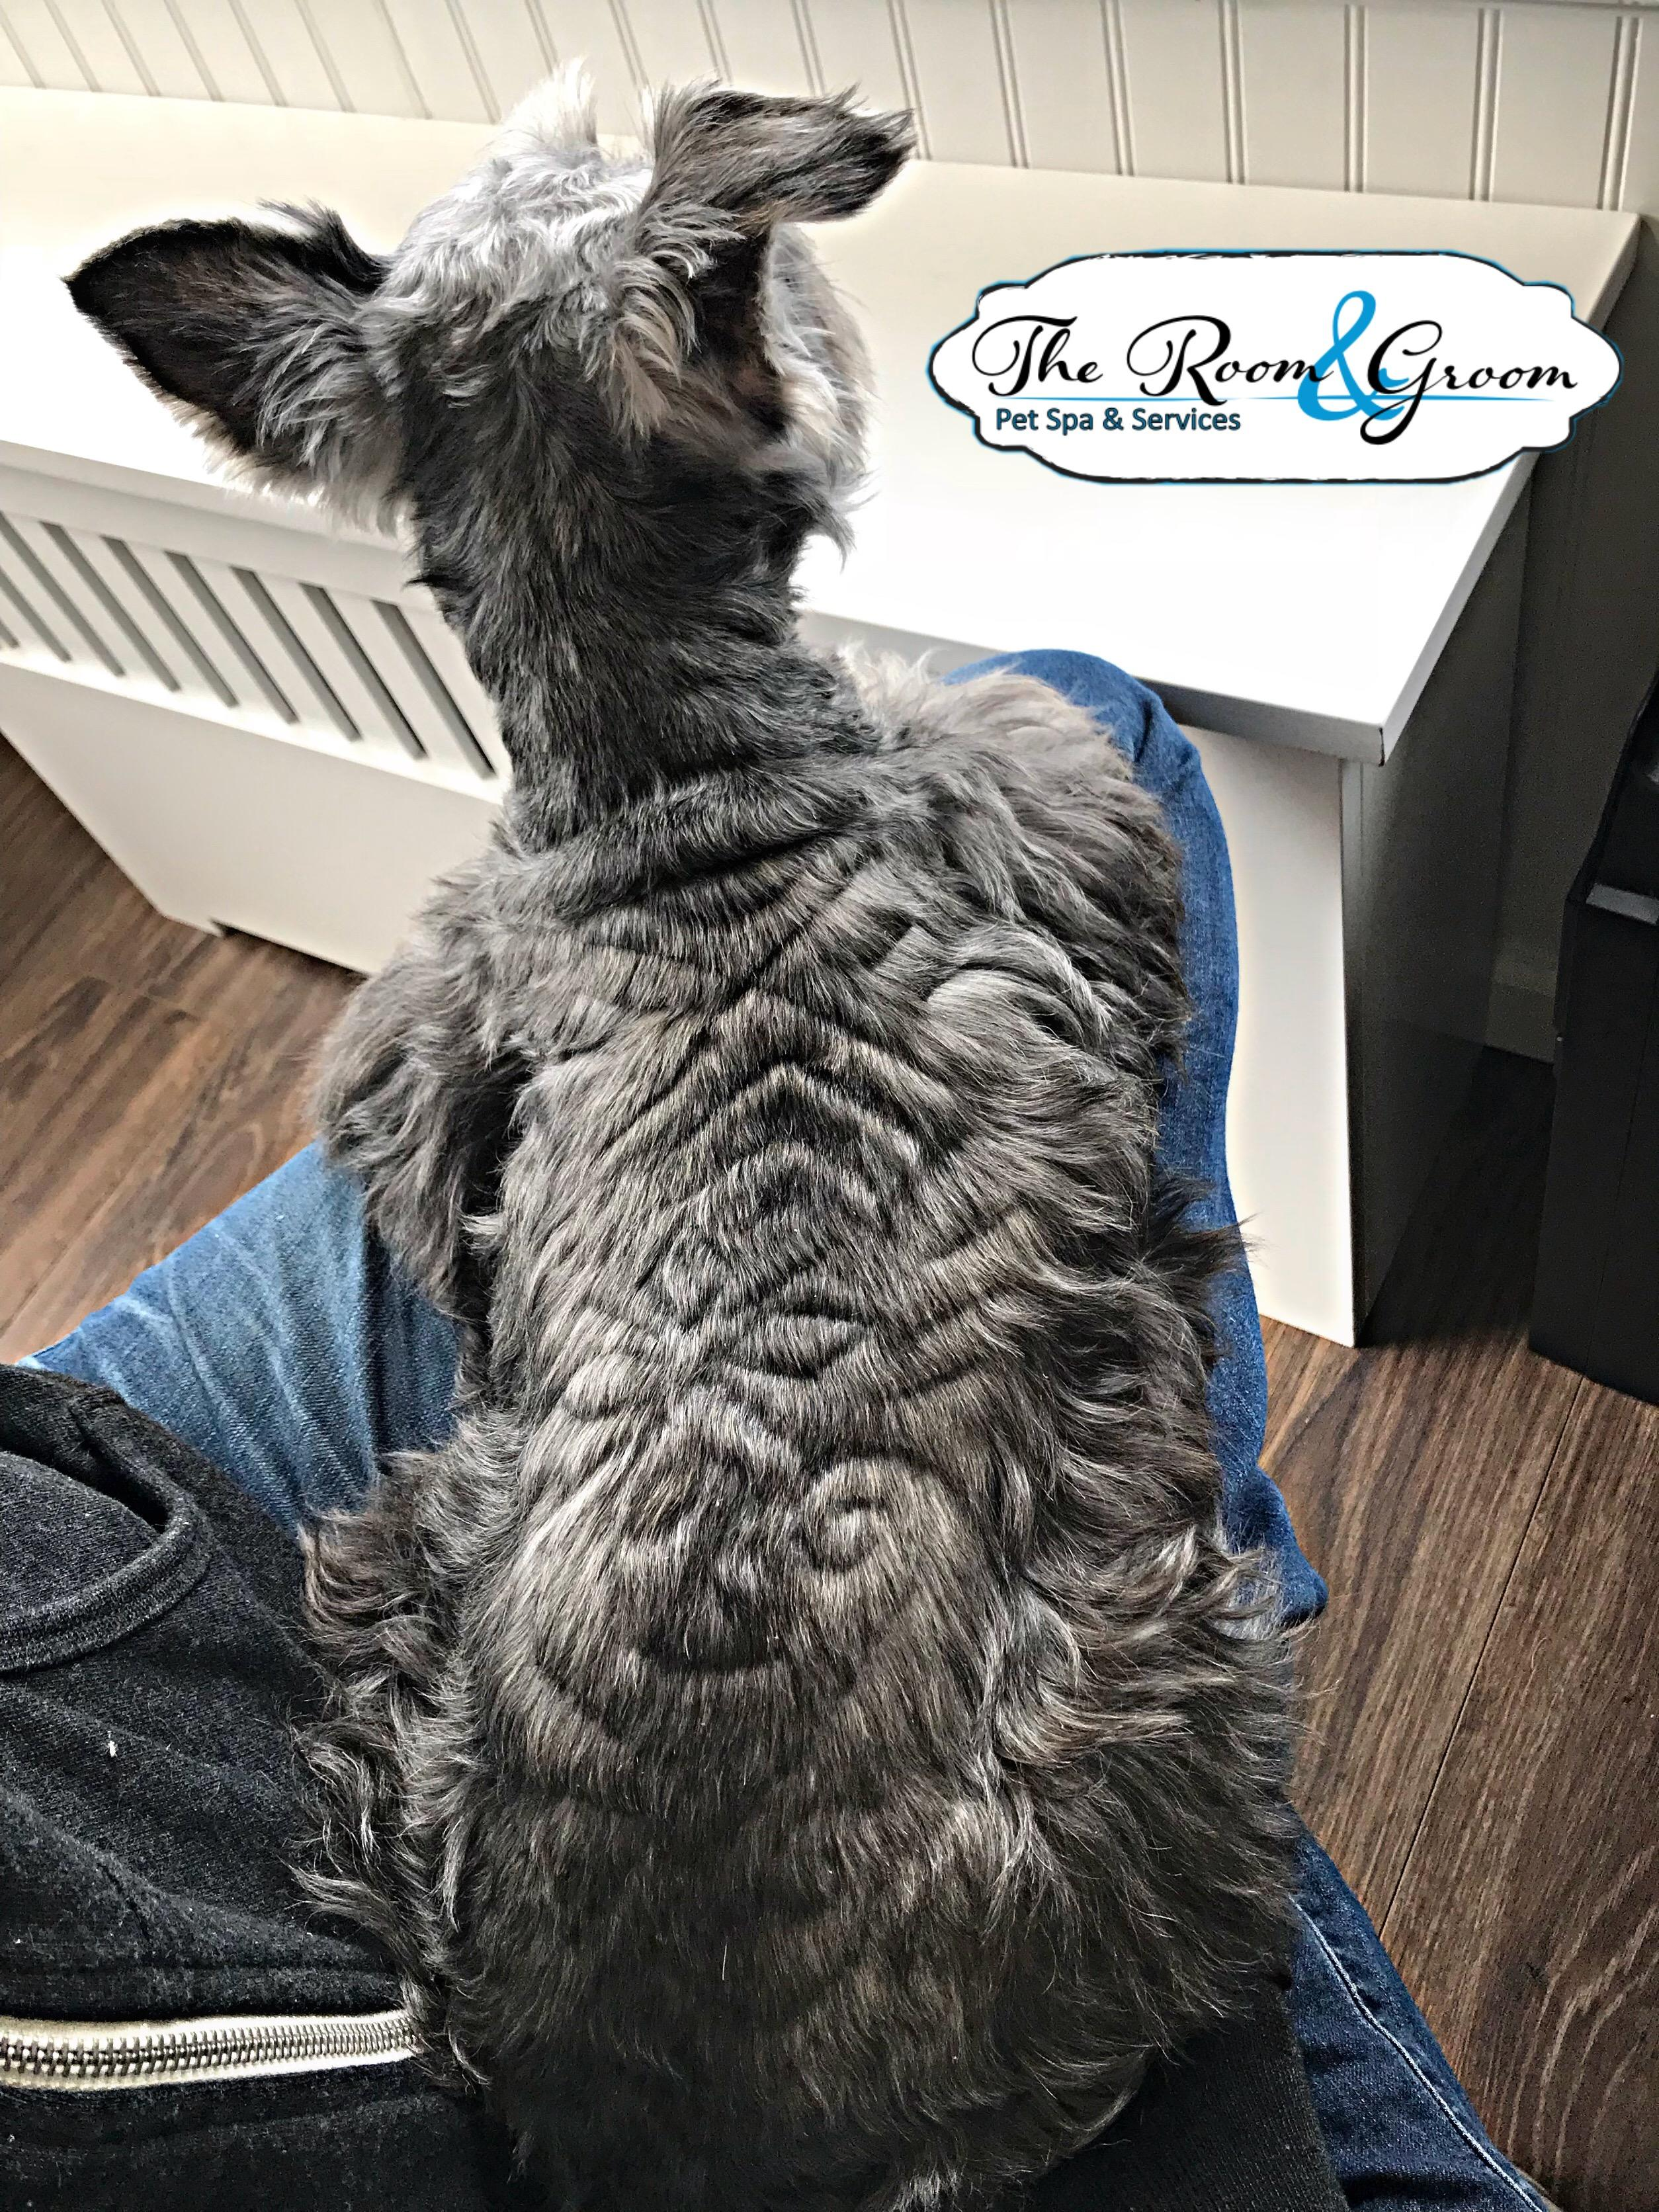 The Room & Groom, Pet Spa & Services image 52